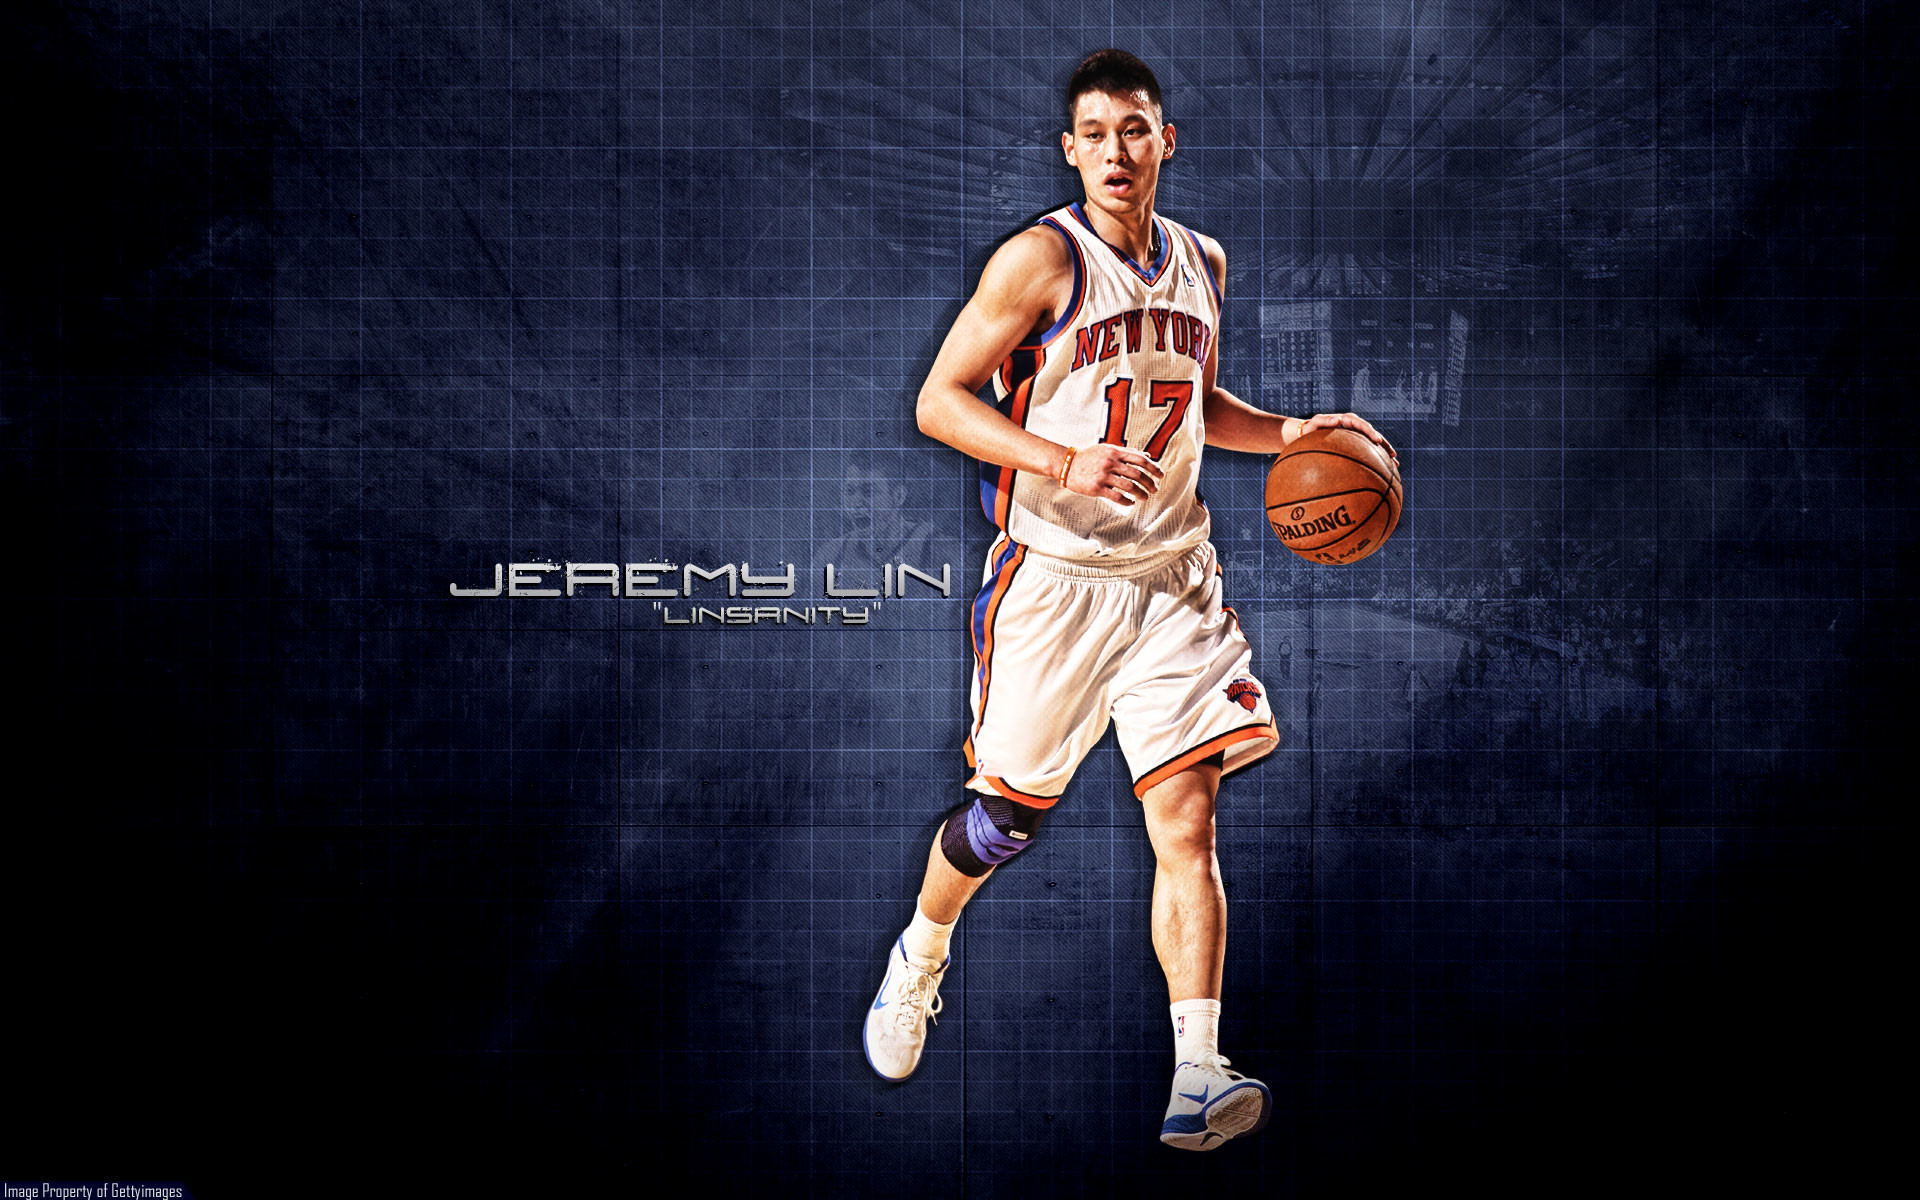 Jeremy Lin Wallpapers 76 images 1920x1200